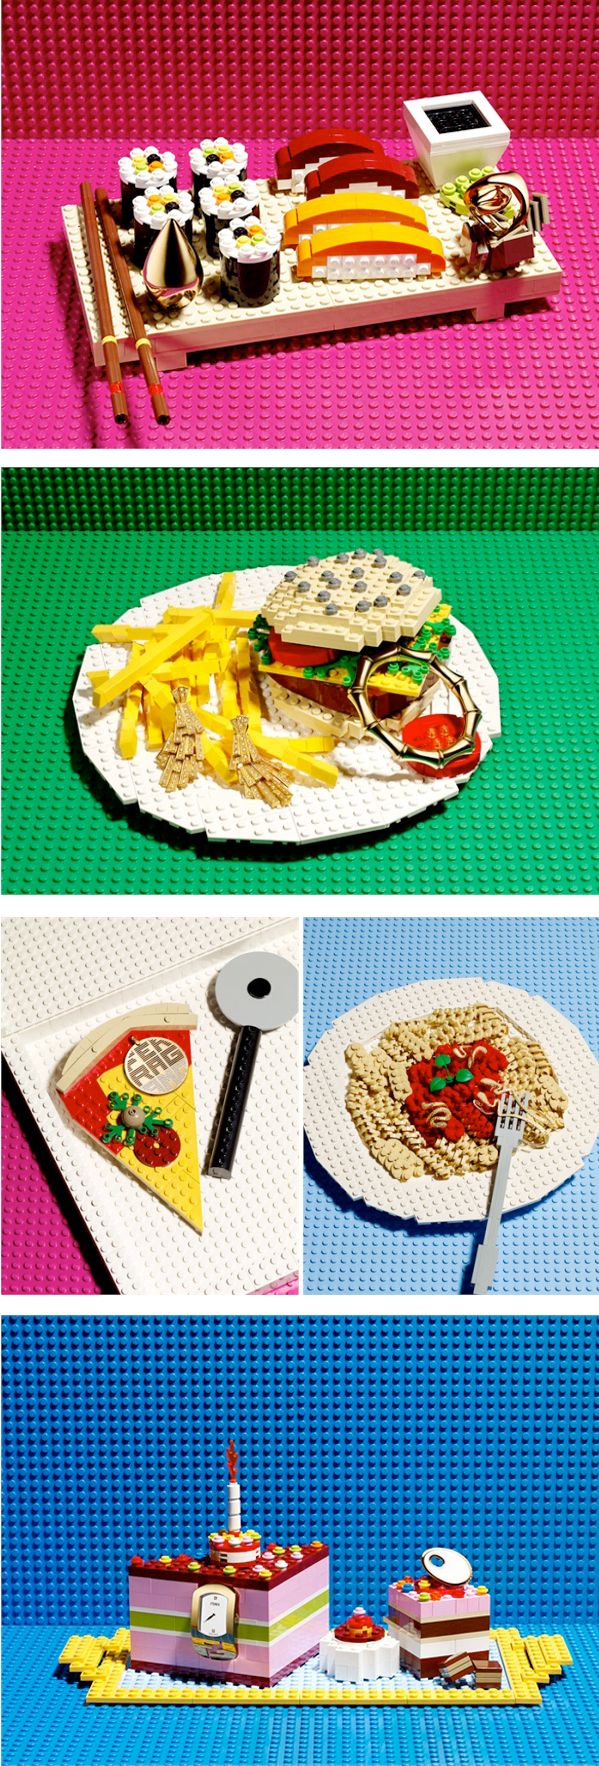 If lego were edible - Vogue's Playful Dream.